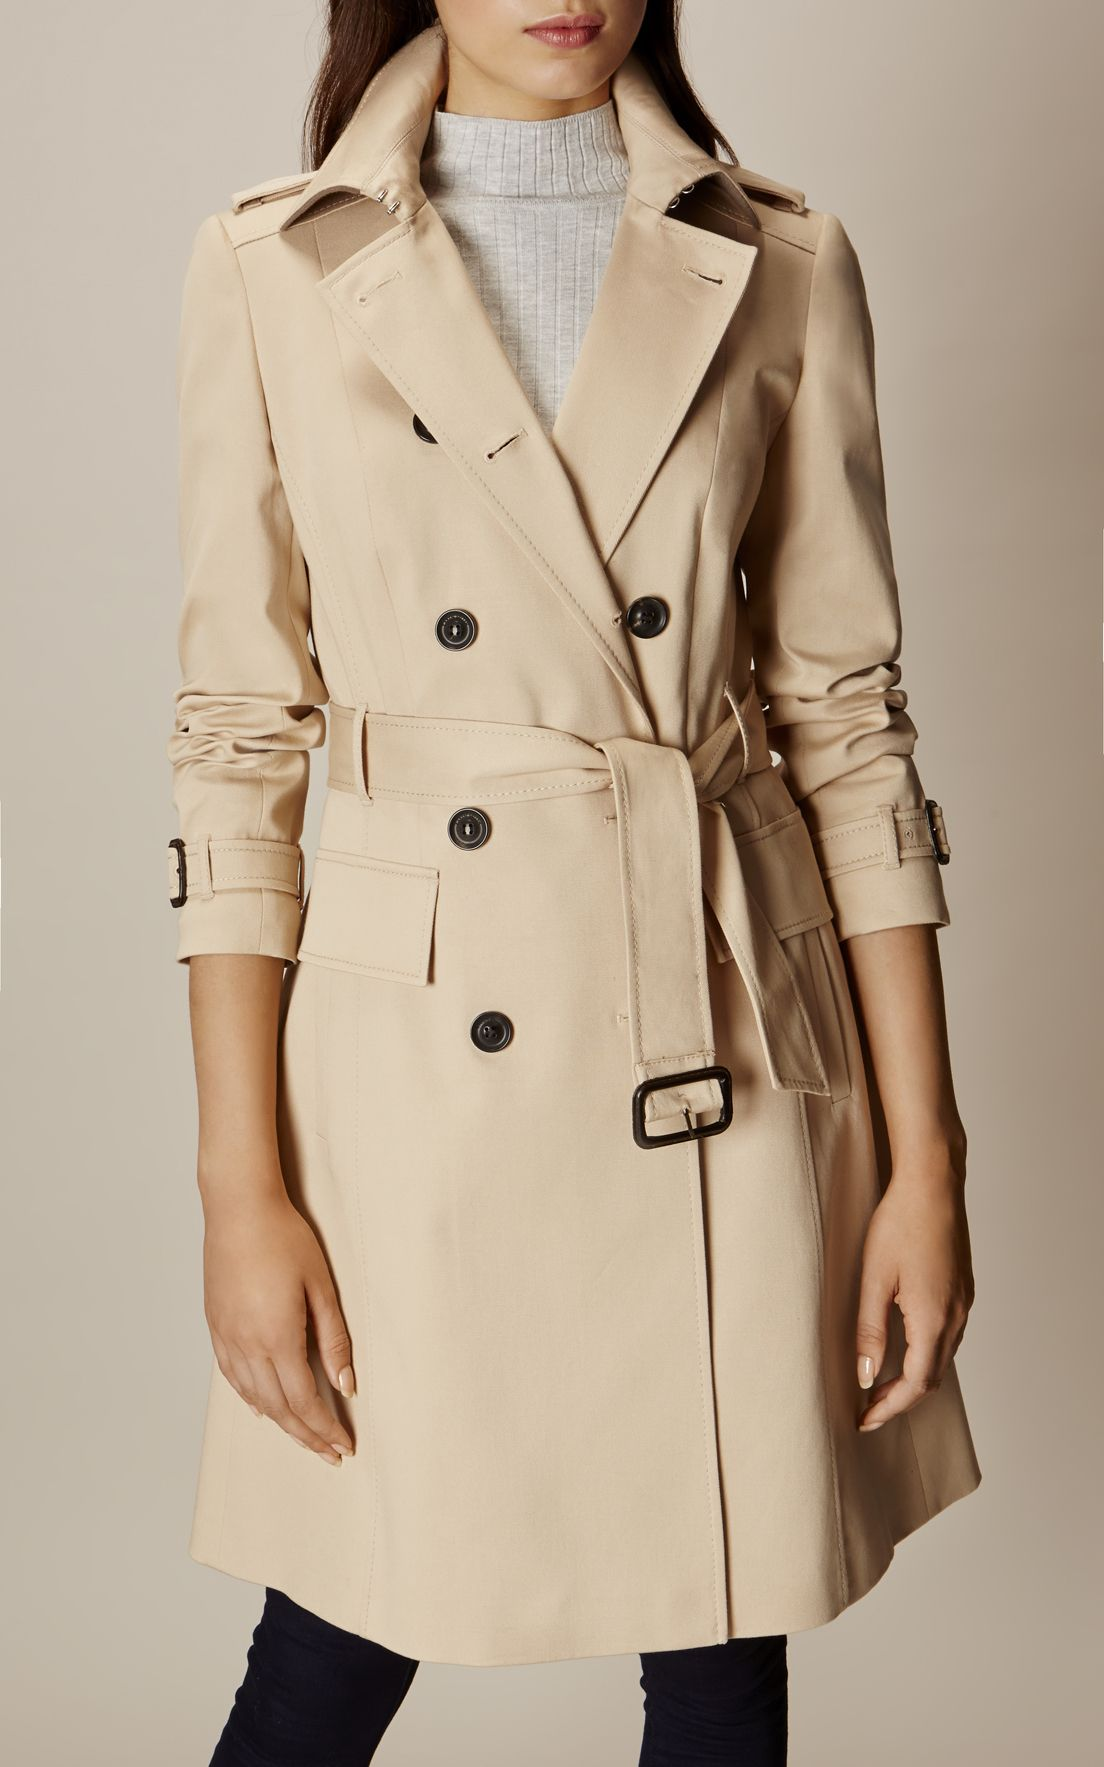 21bdc6cd5d Karen Millen, CLASSIC TRENCH COAT Neutral | Fall Style | Classic ...